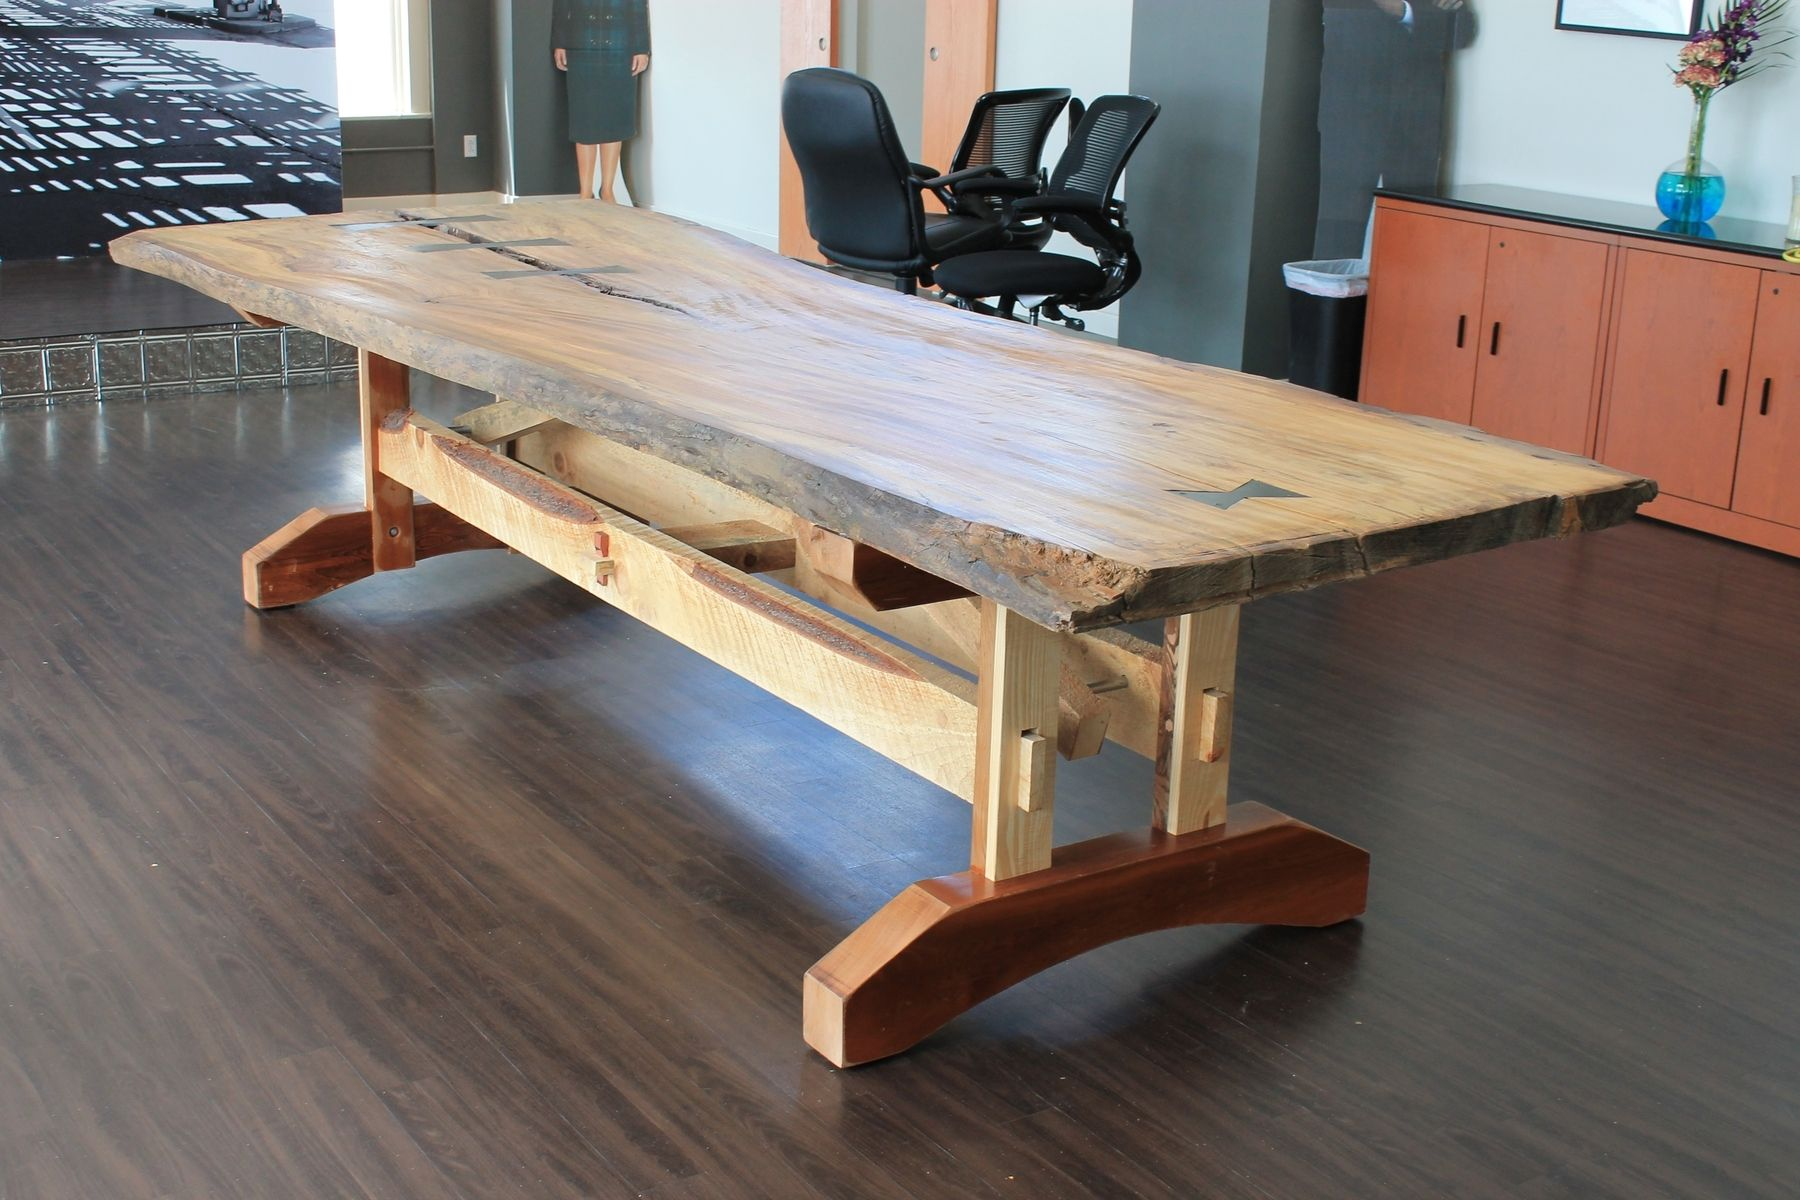 Hand Crafted Reclaimed Live Edge Elm Table By Crafty